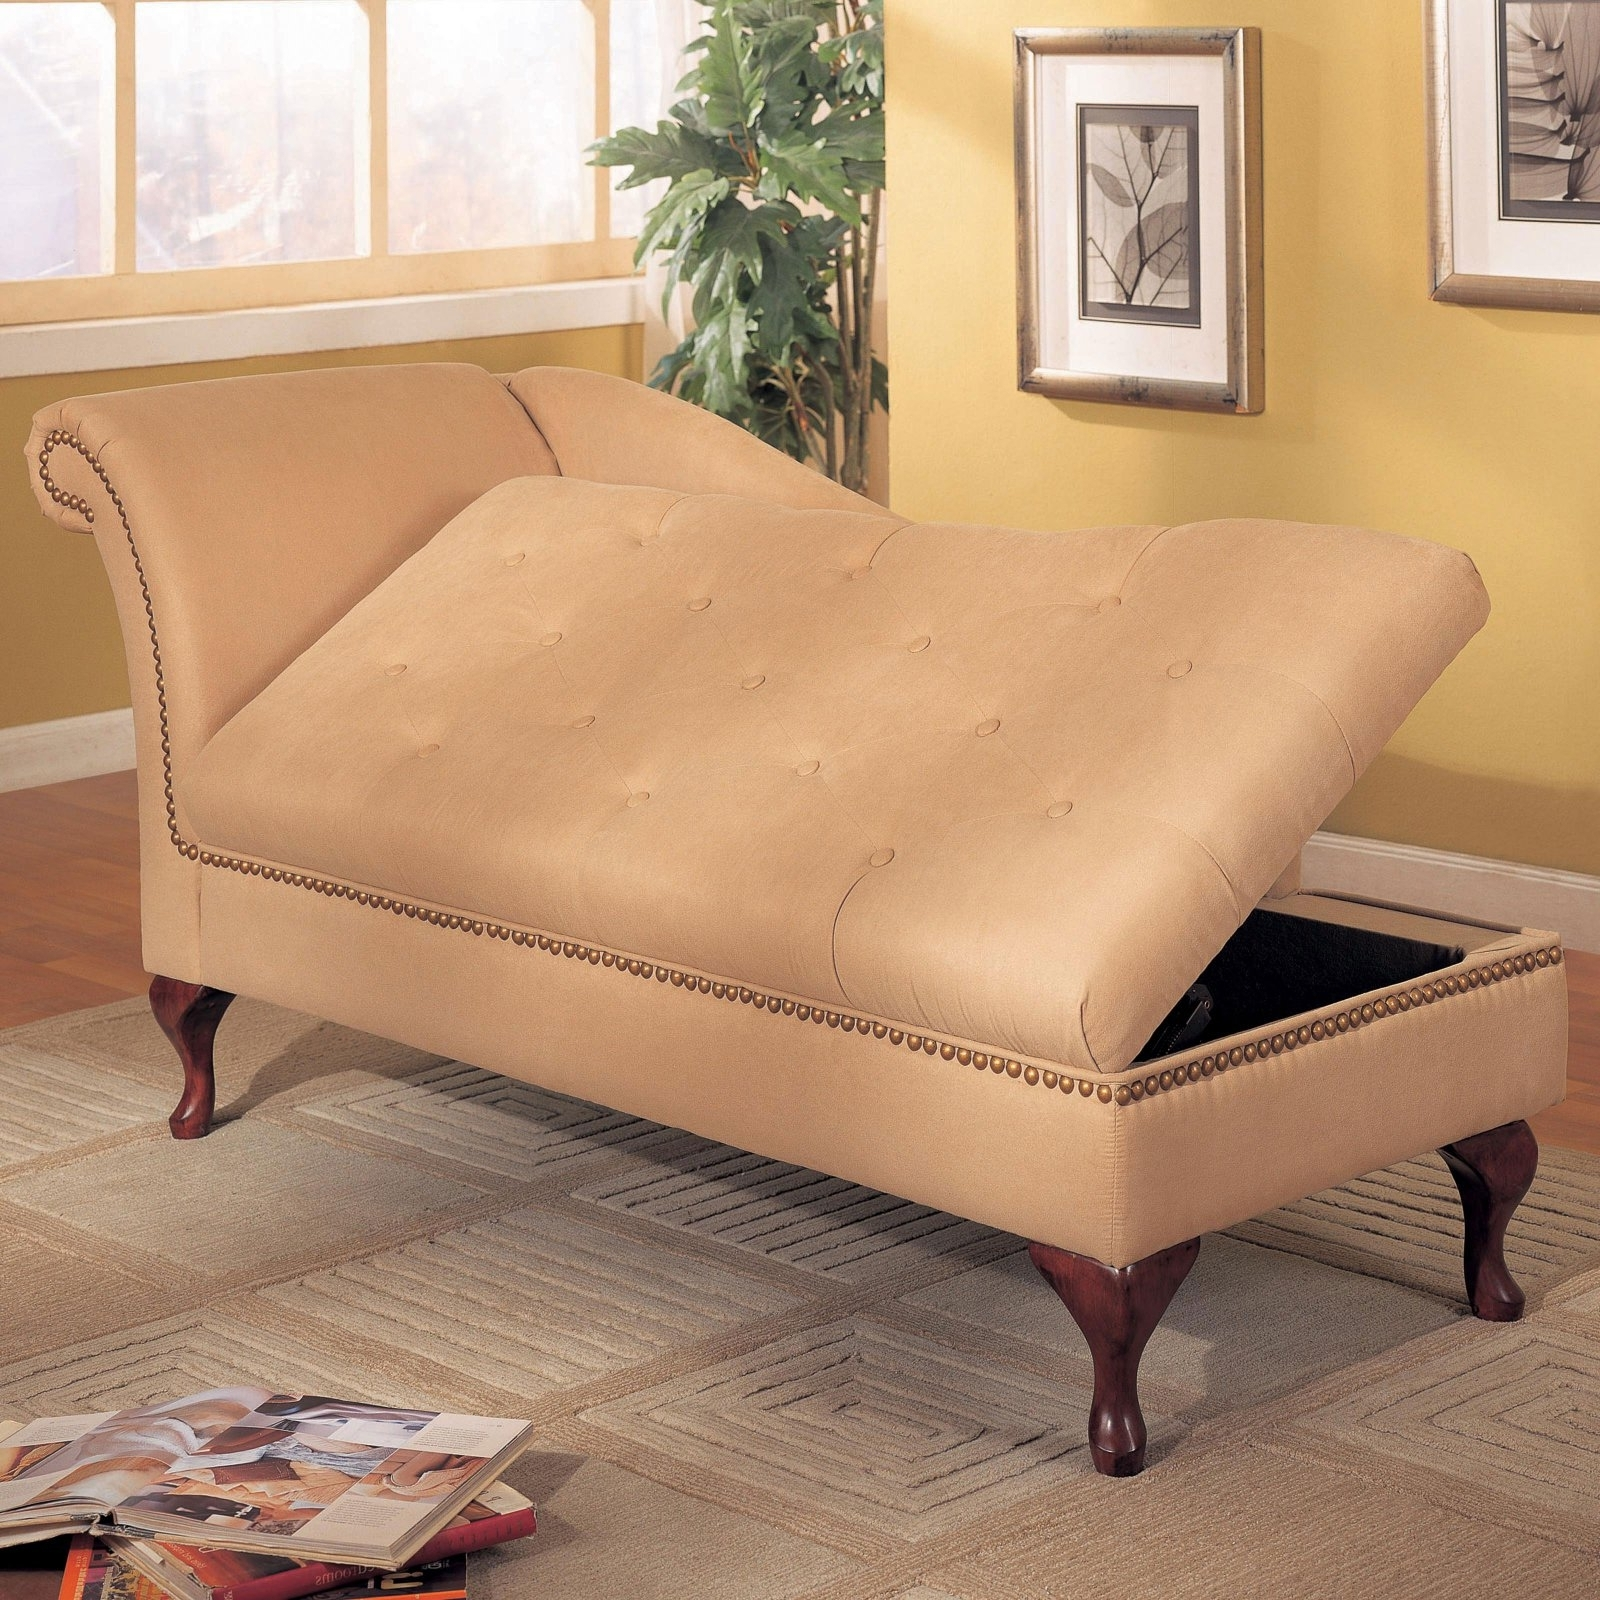 Recent Small Chaise Lounge Chair For Room Awesome Bedroom Chairs Ideas Intended For Chaise Lounges For Bedrooms (View 12 of 15)